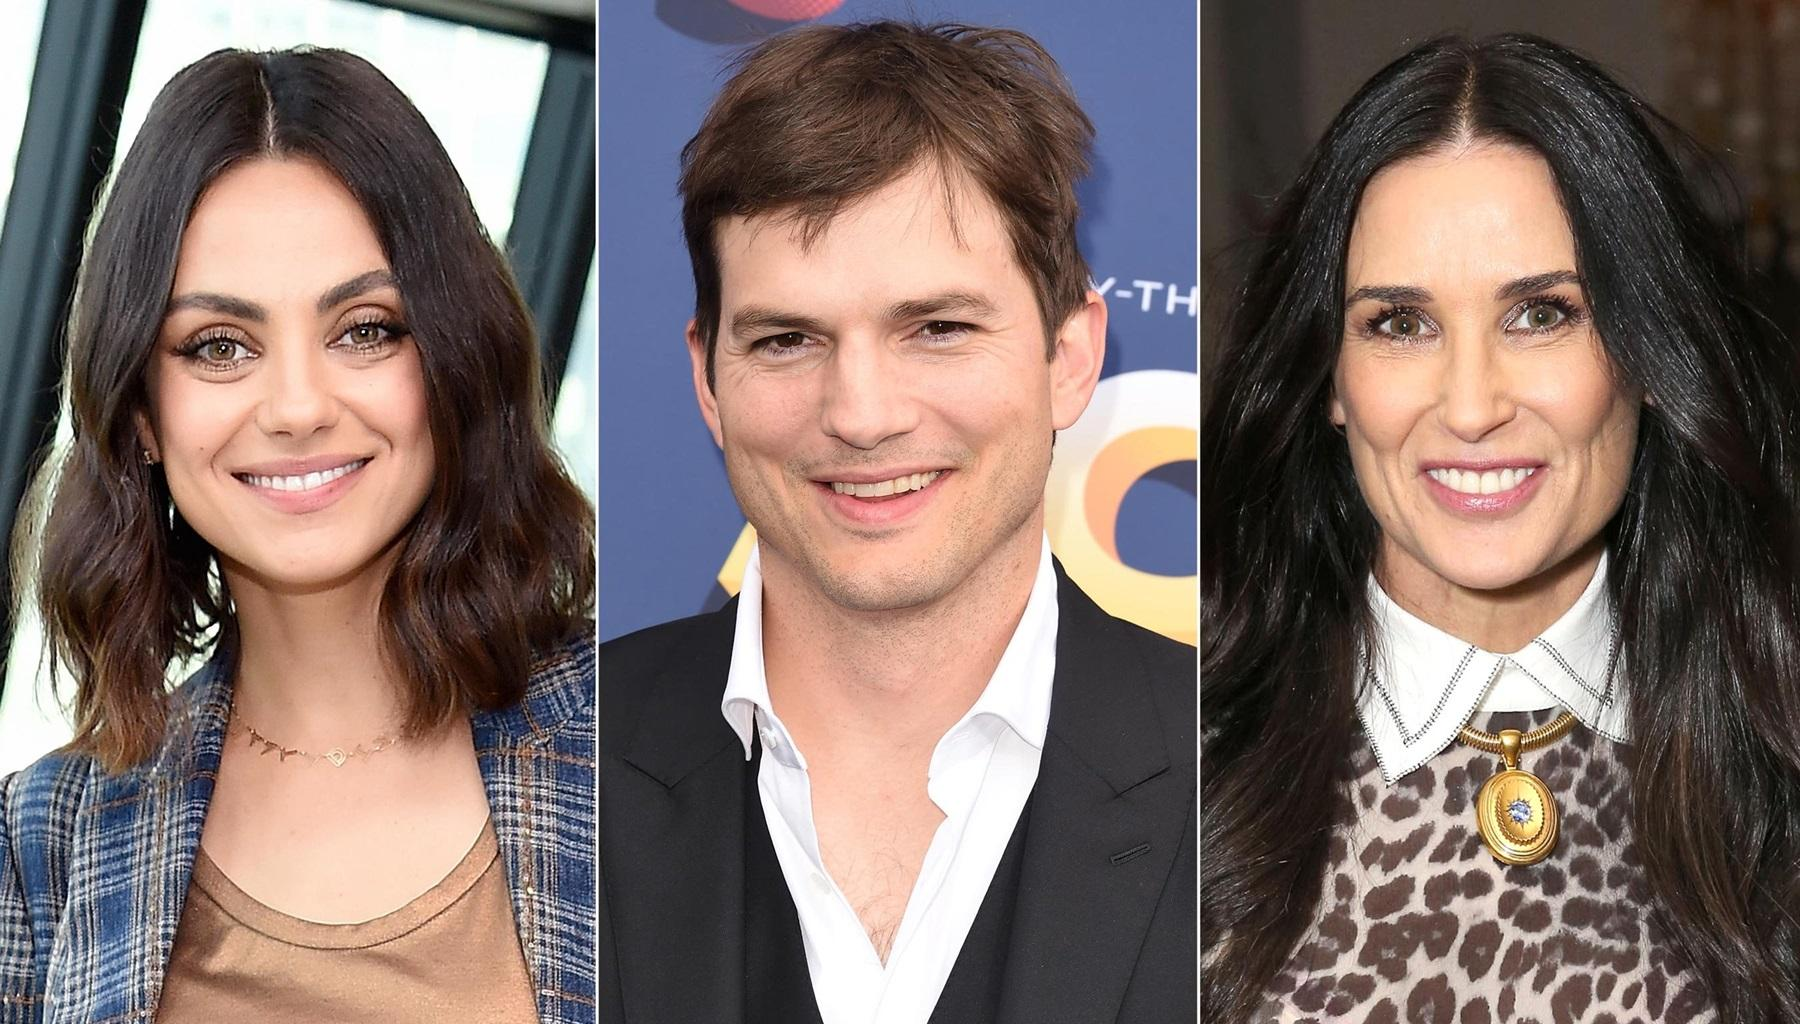 Mila Kunis Disapproves Of Demi Moore's Recent Public Statements About Her Husband, Ashton Kutcher -- Is This Just About Selling Books?